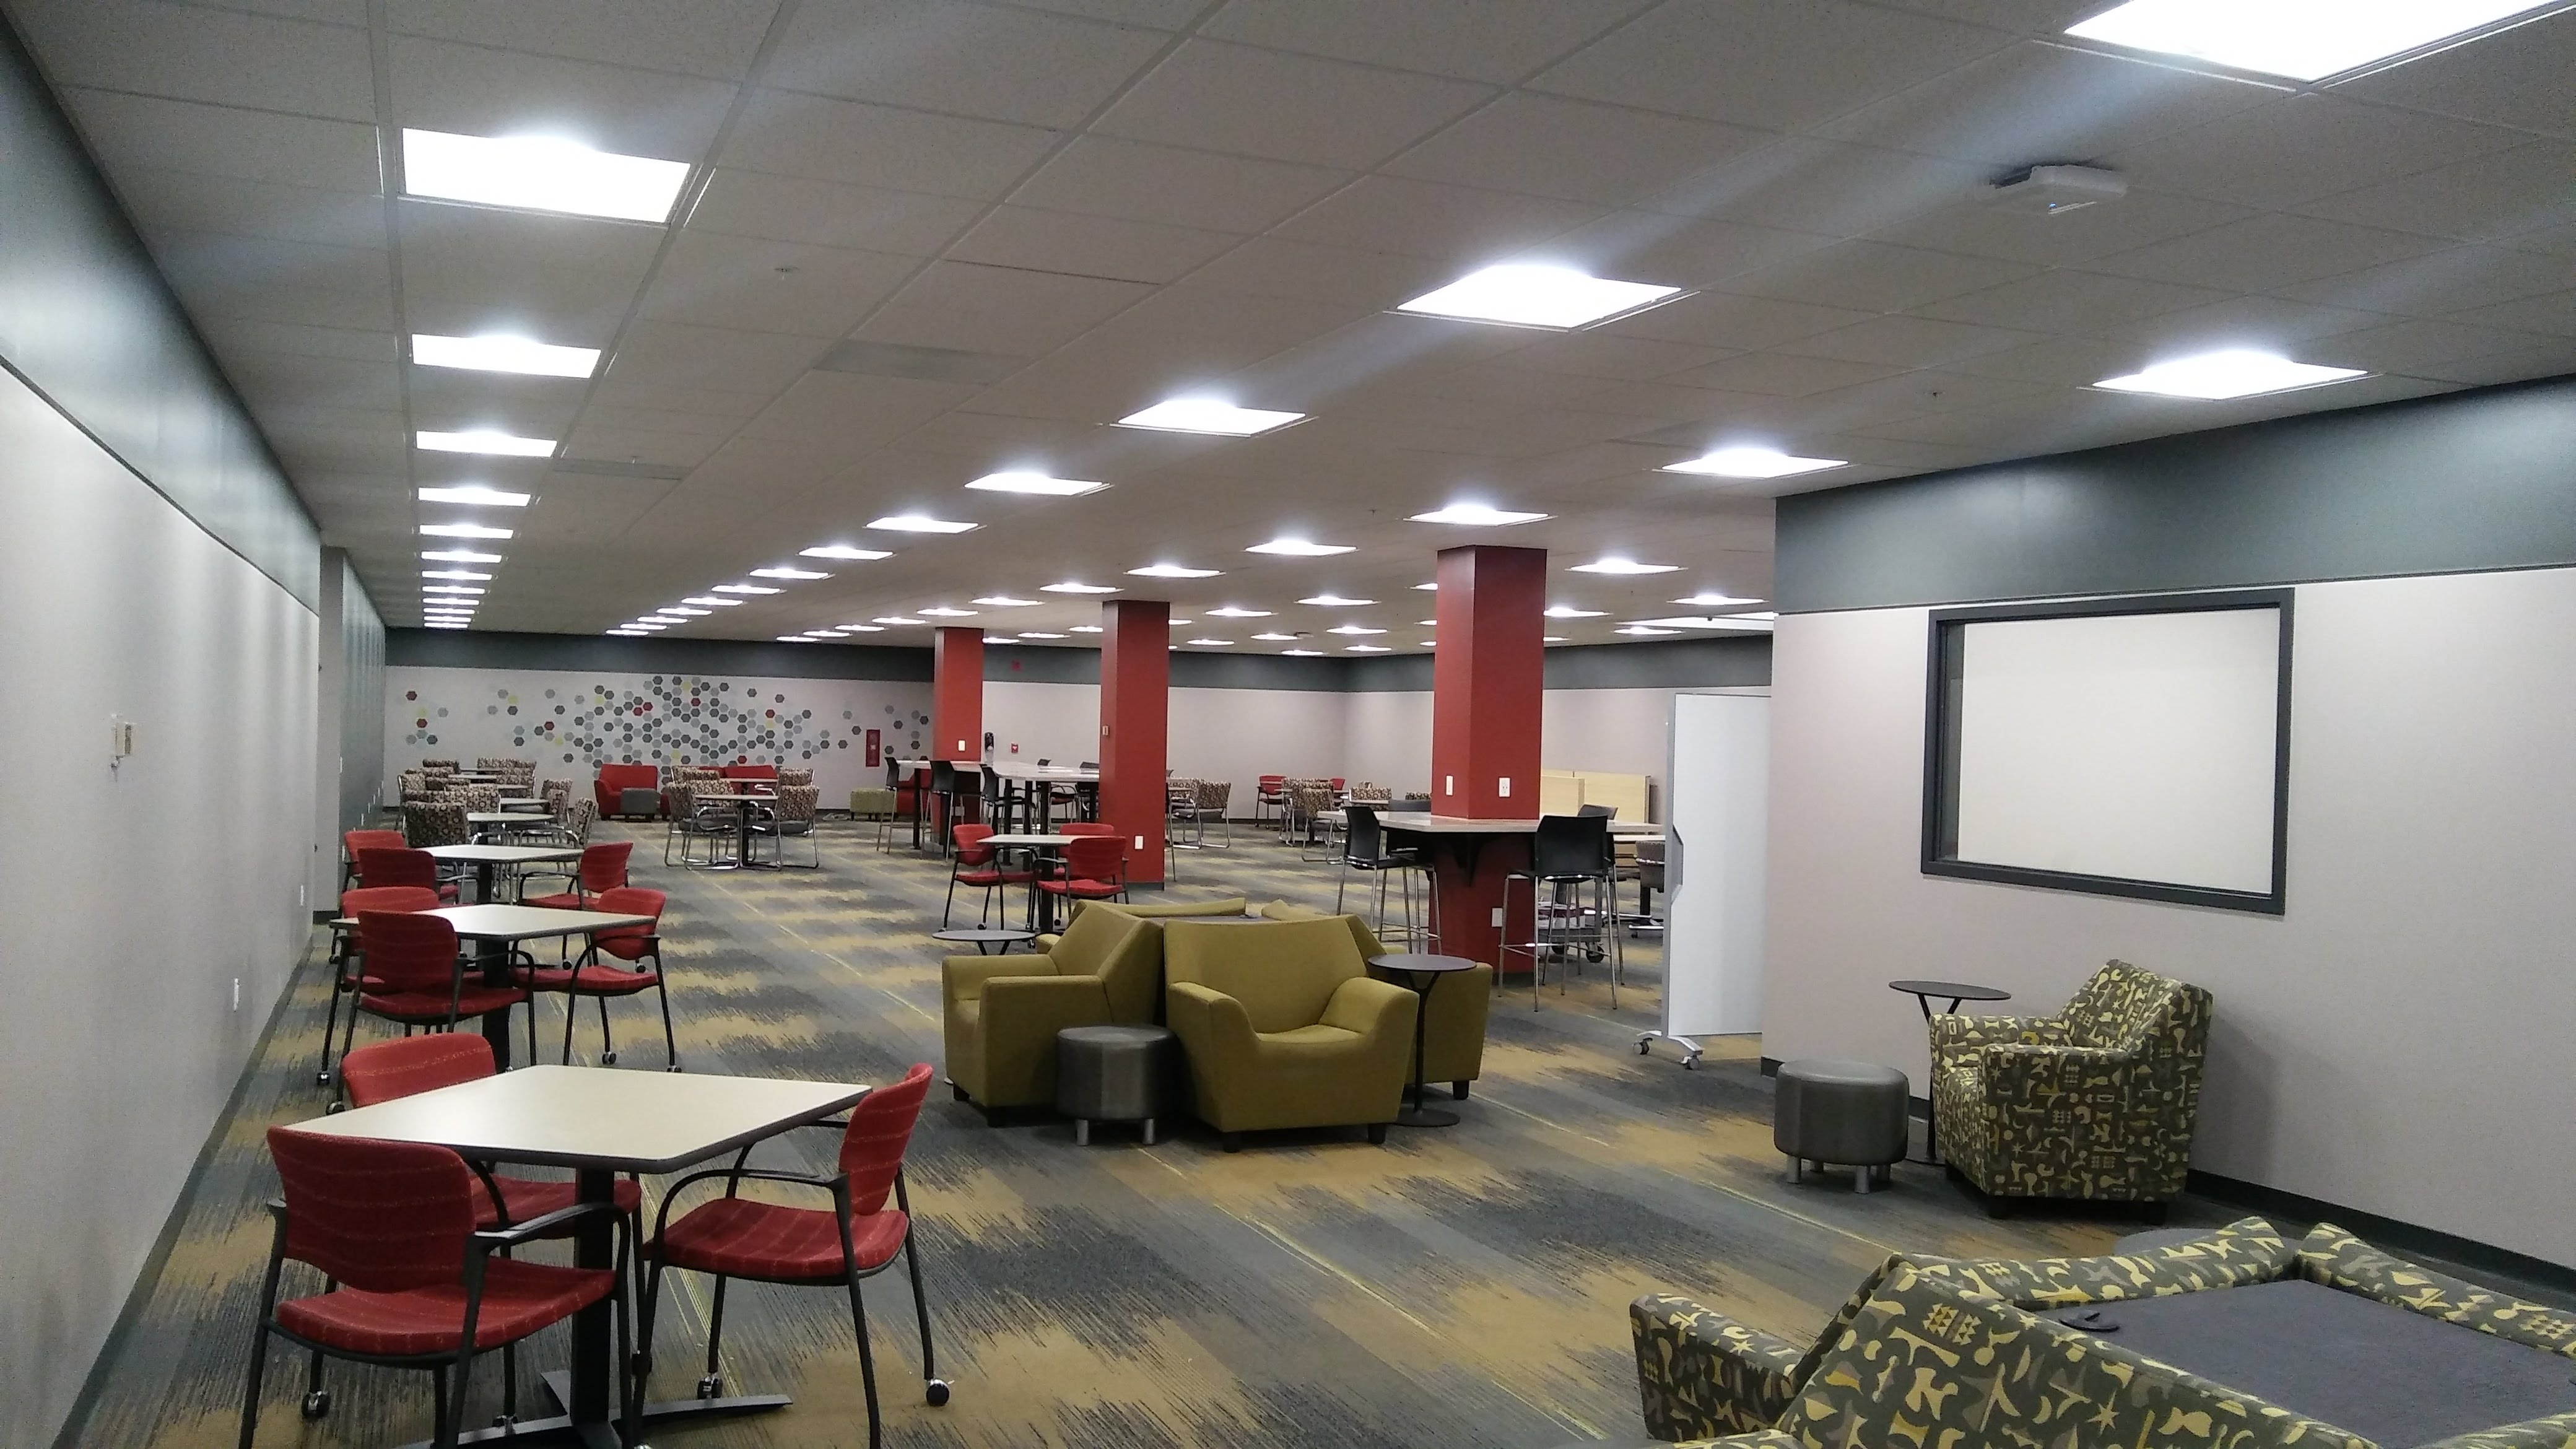 Student area nearly complete